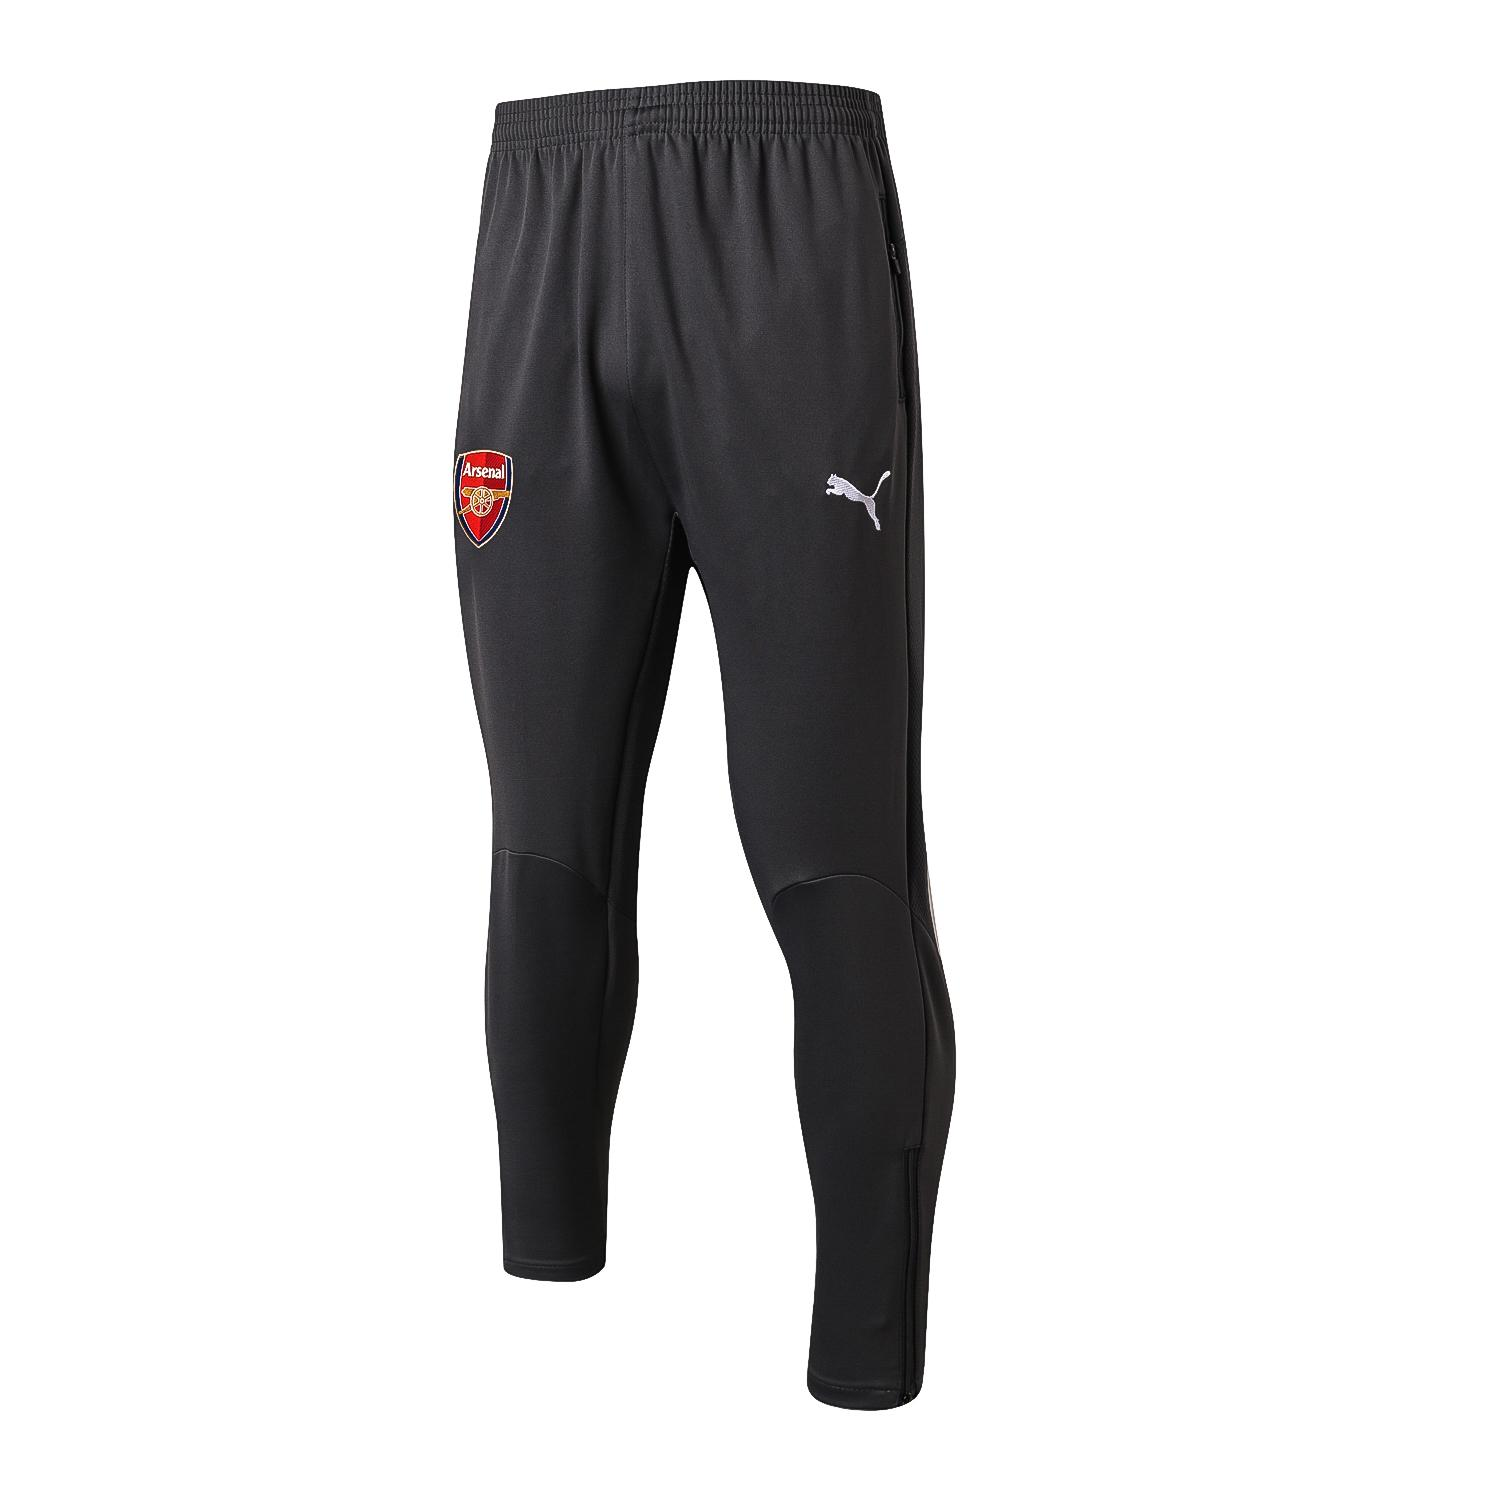 Toko Top Quality 2018 Arsenalfc Training Pants Trousers Football Pants Oem America